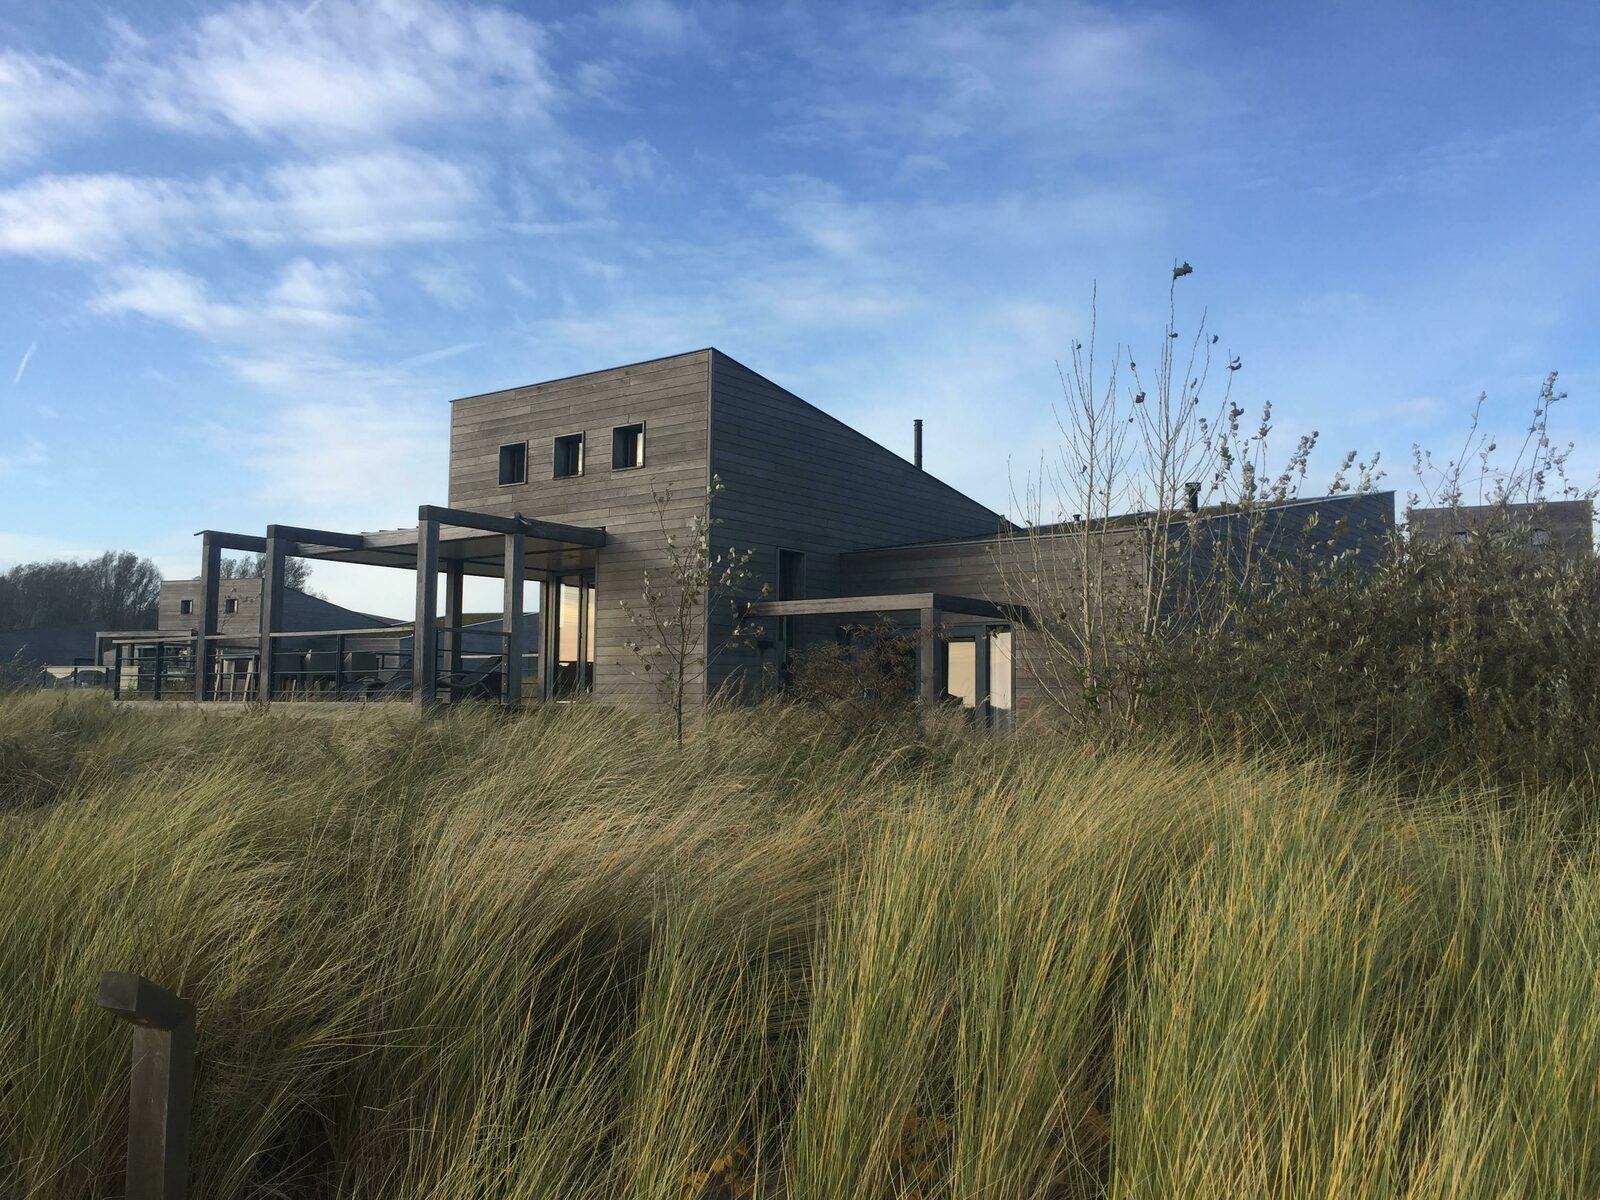 The villa was completely lost in the dunes and grass